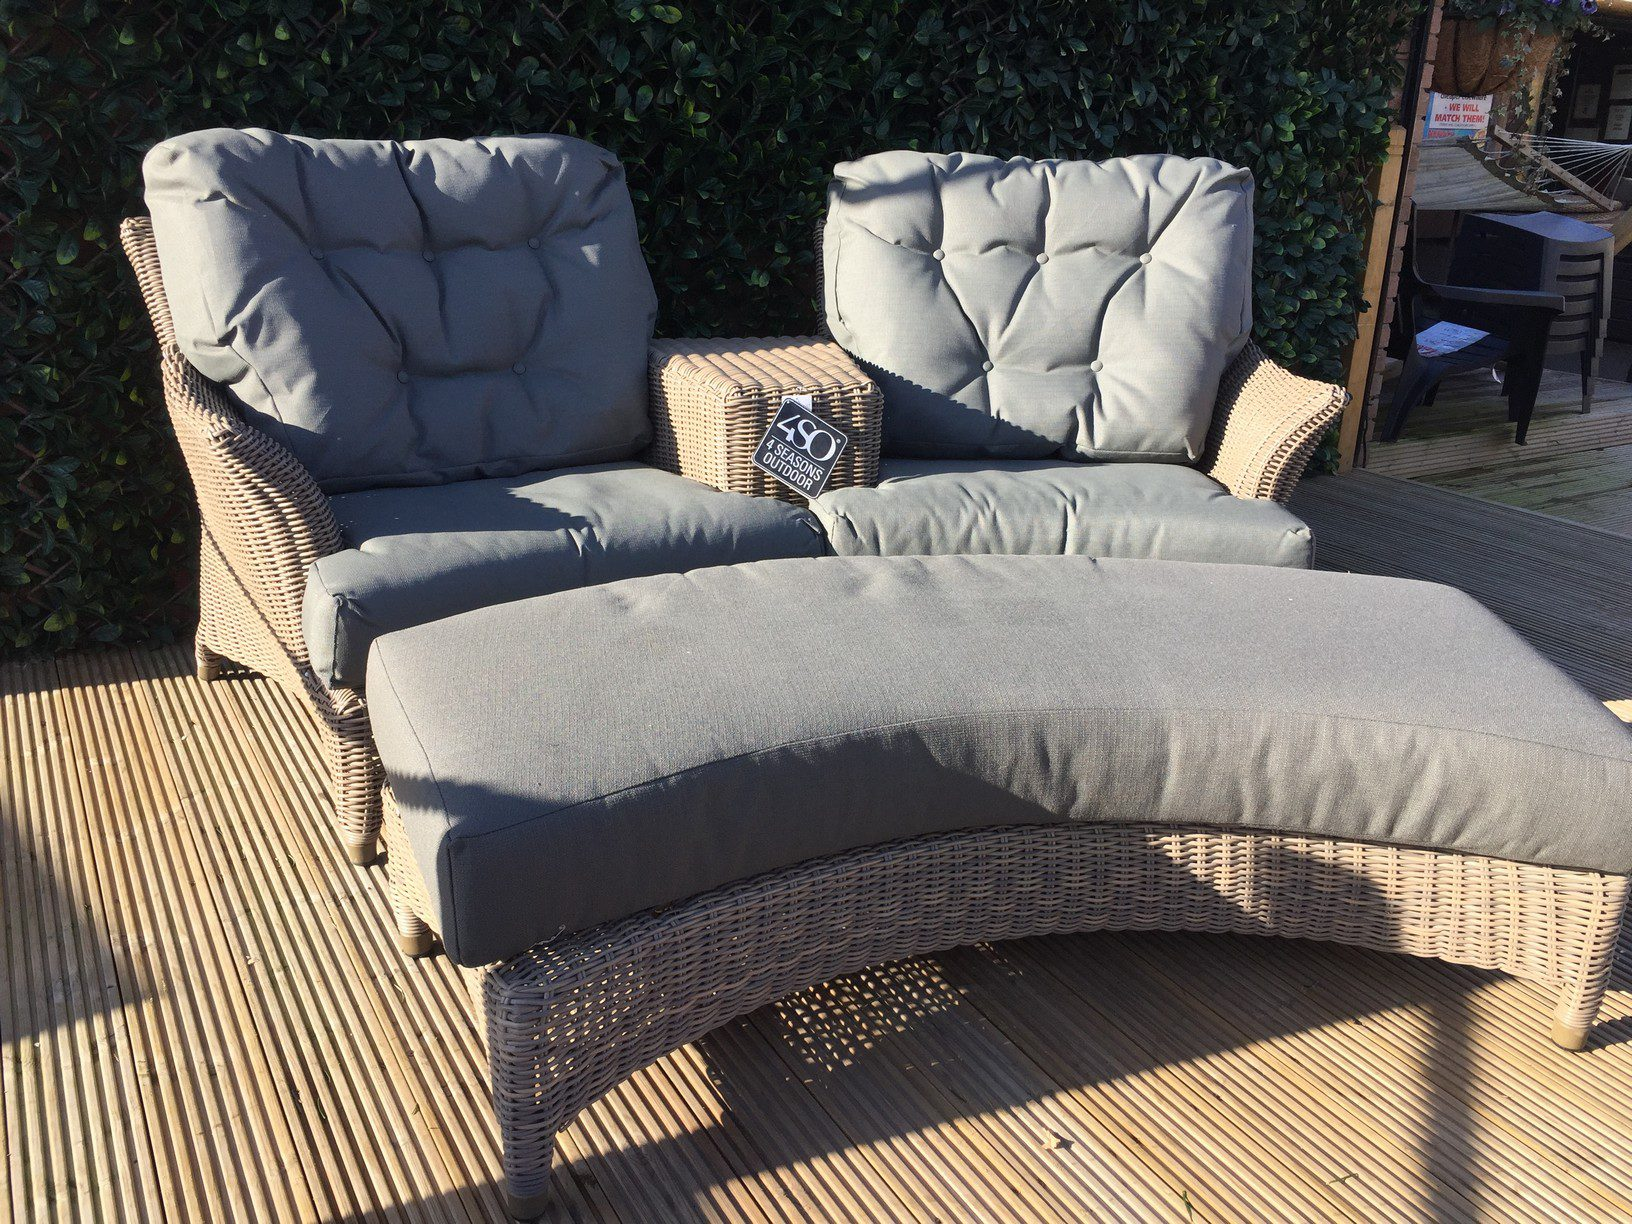 4 Seasons Outdoor Valentine Love Seat With Footrest 12